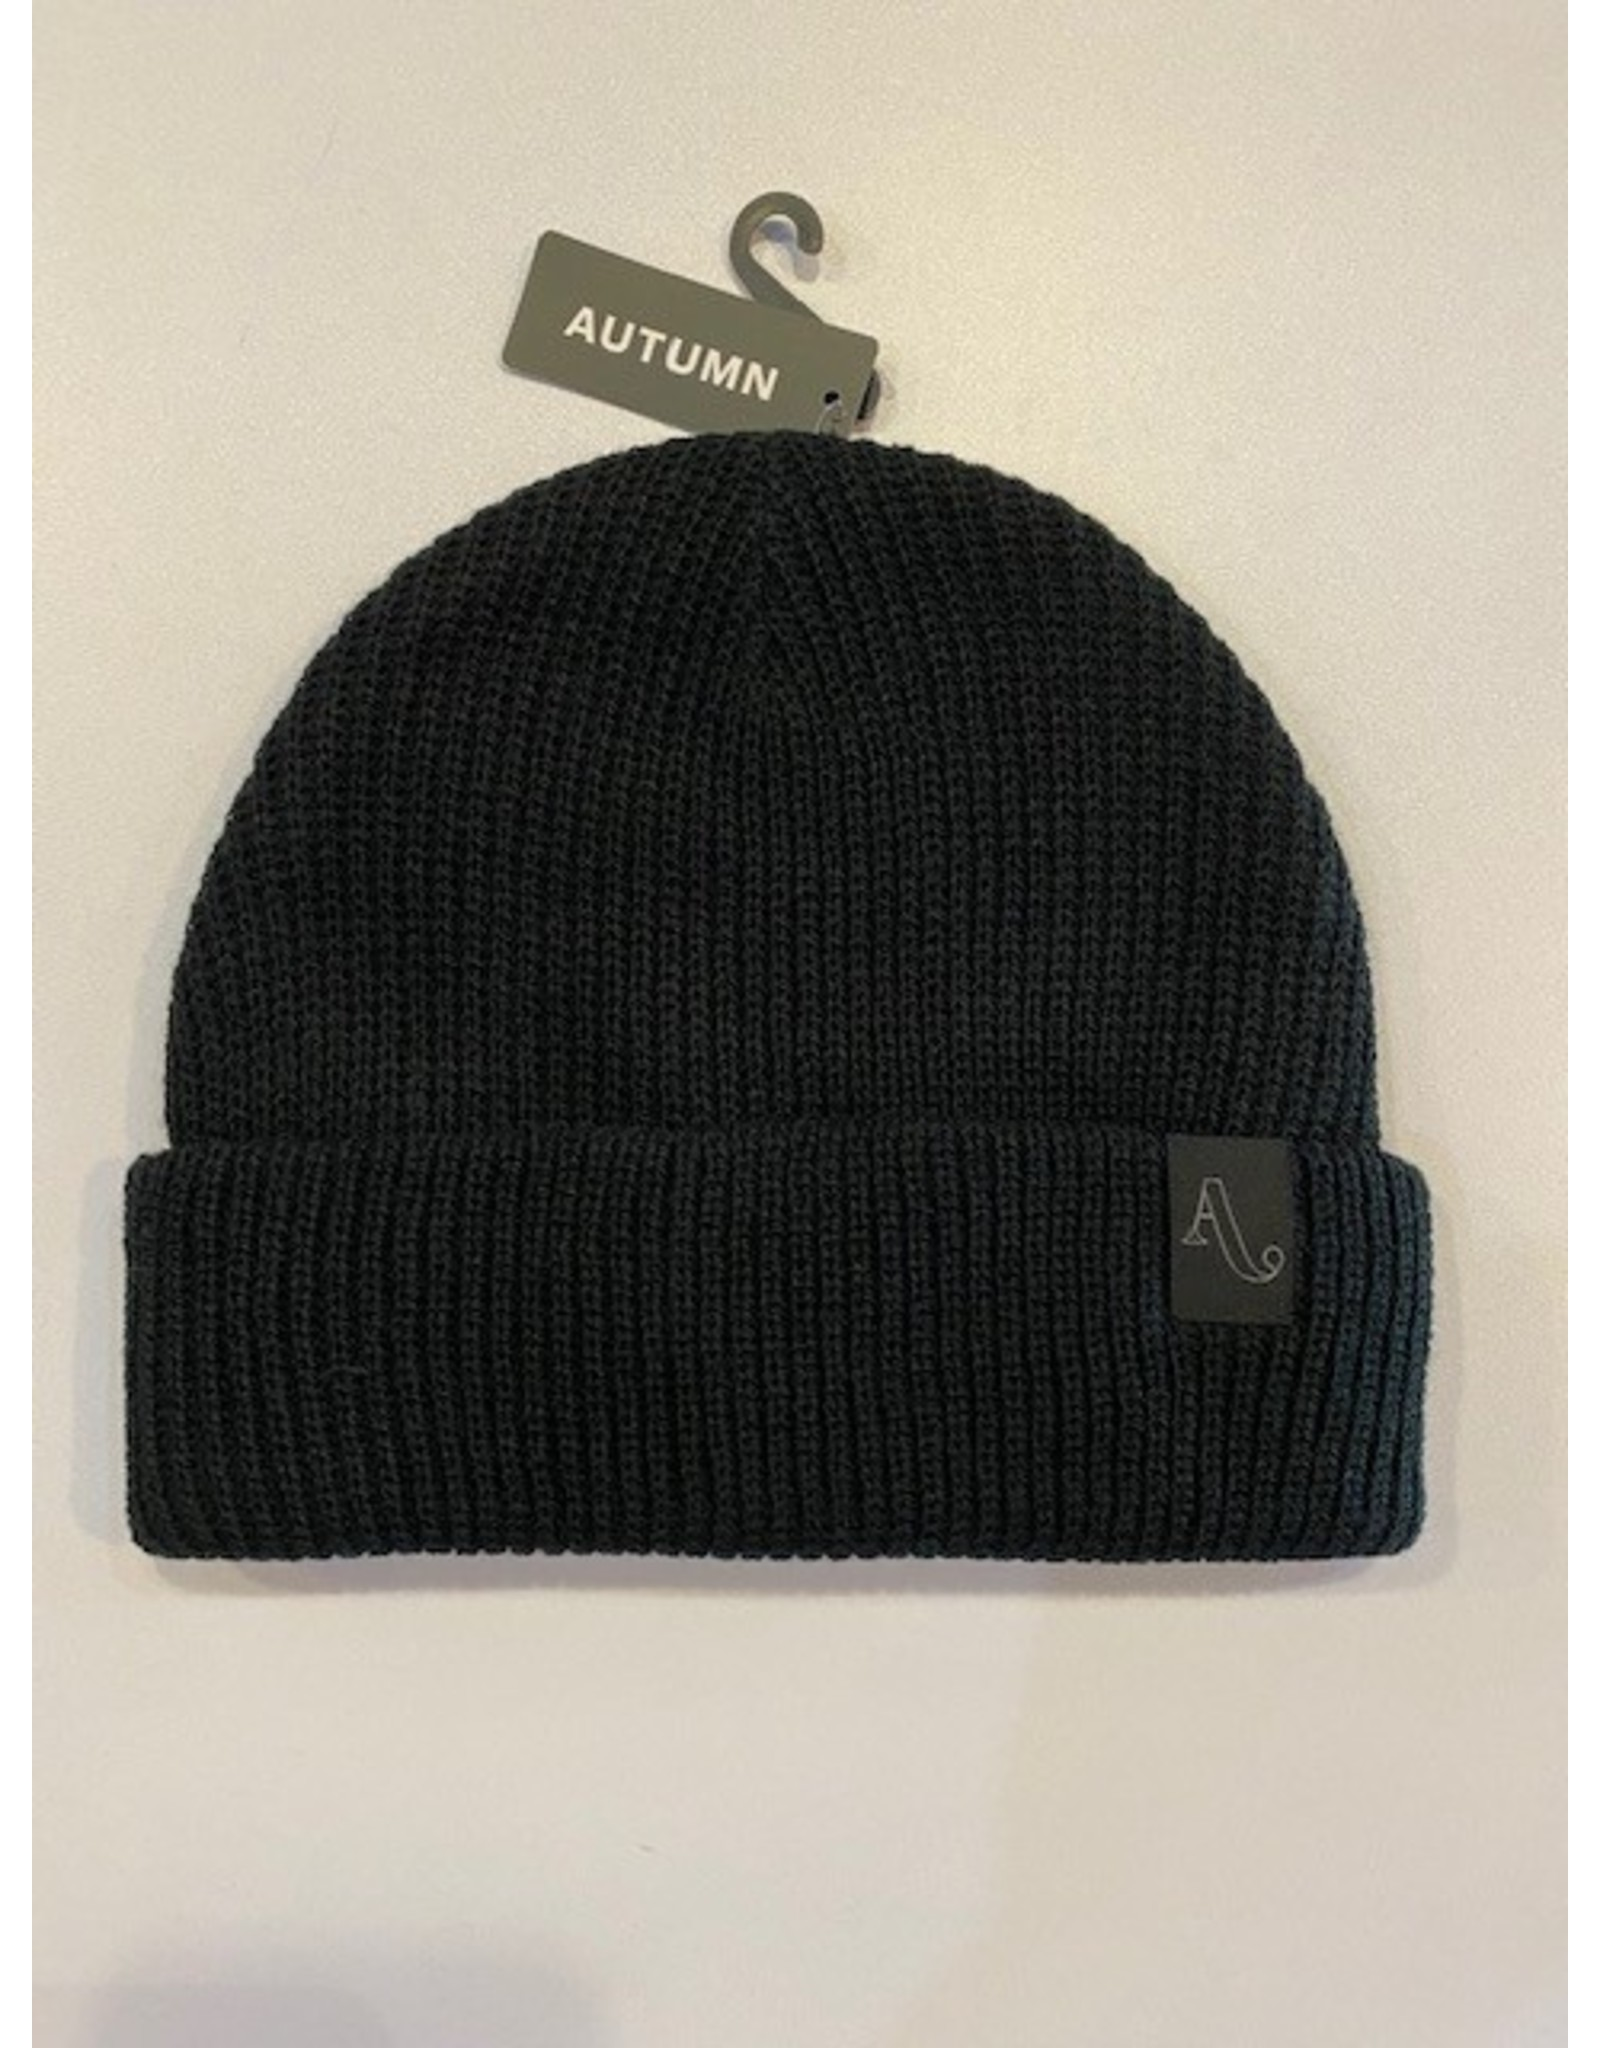 AUTUMN AUTUMN 2021 SIMPLE BEANIE